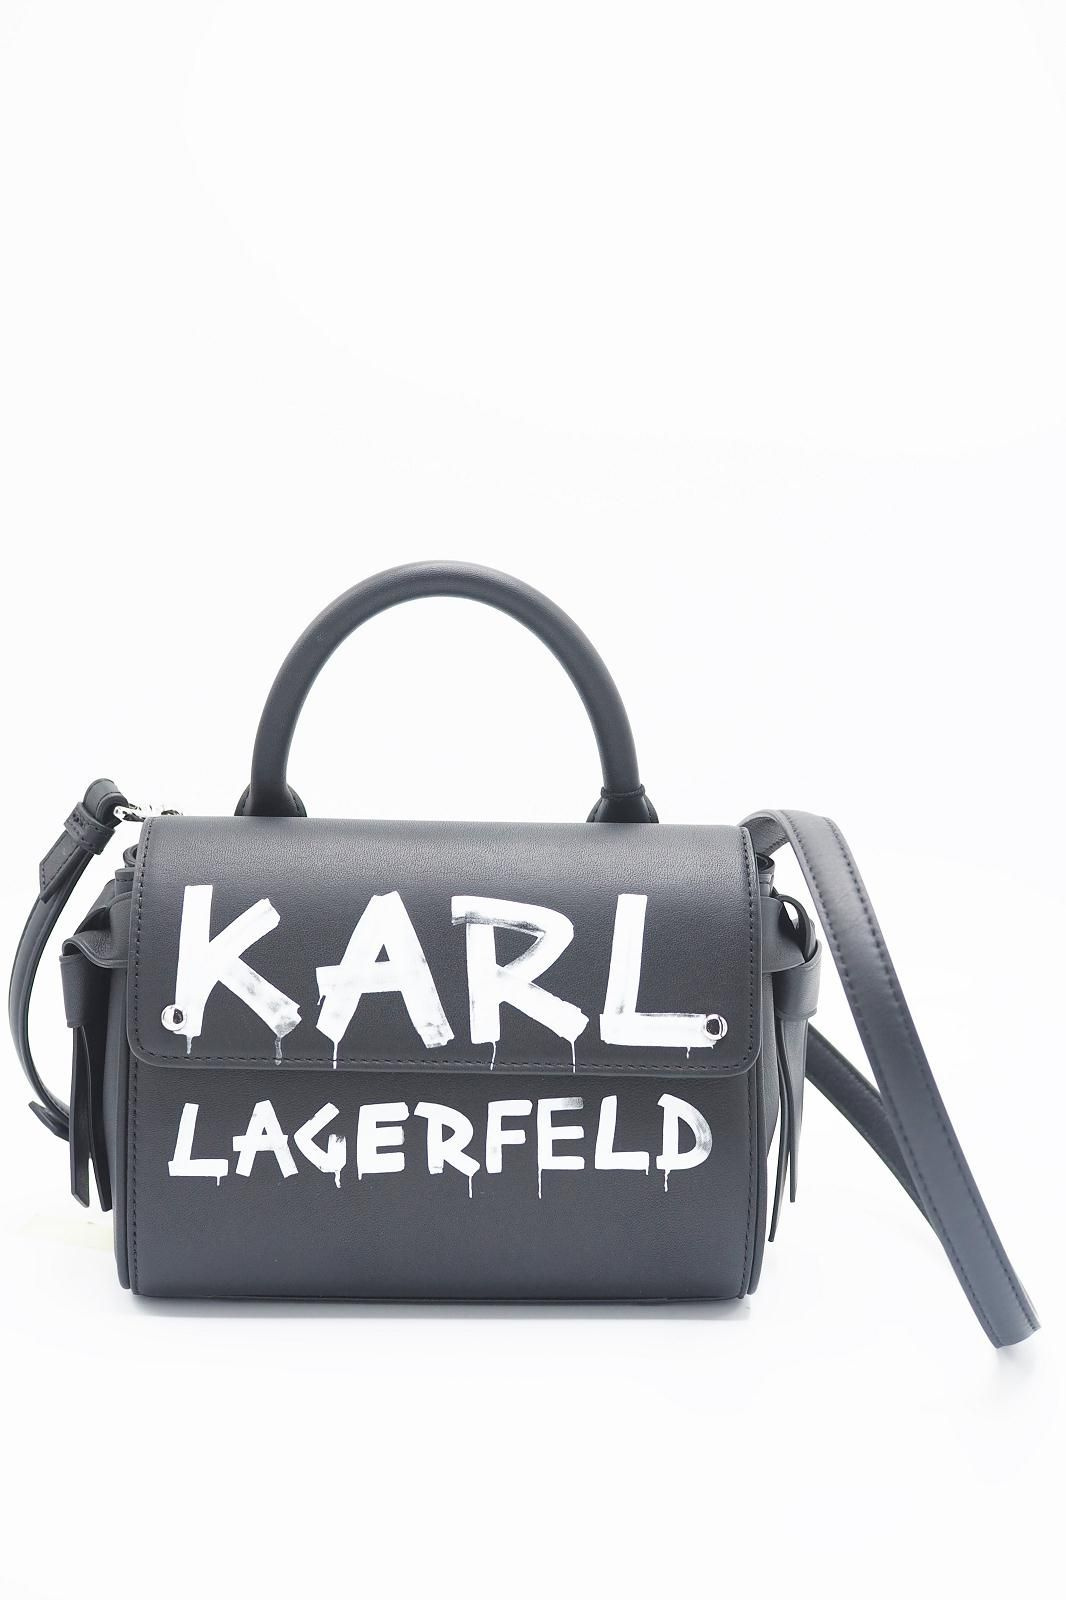 Karl Lagerfeld sac Noir femmes (KL-Sac Rock graffittis rabat - 3059 sac Rock Graffitis blanc) - Marine | Much more than shoes